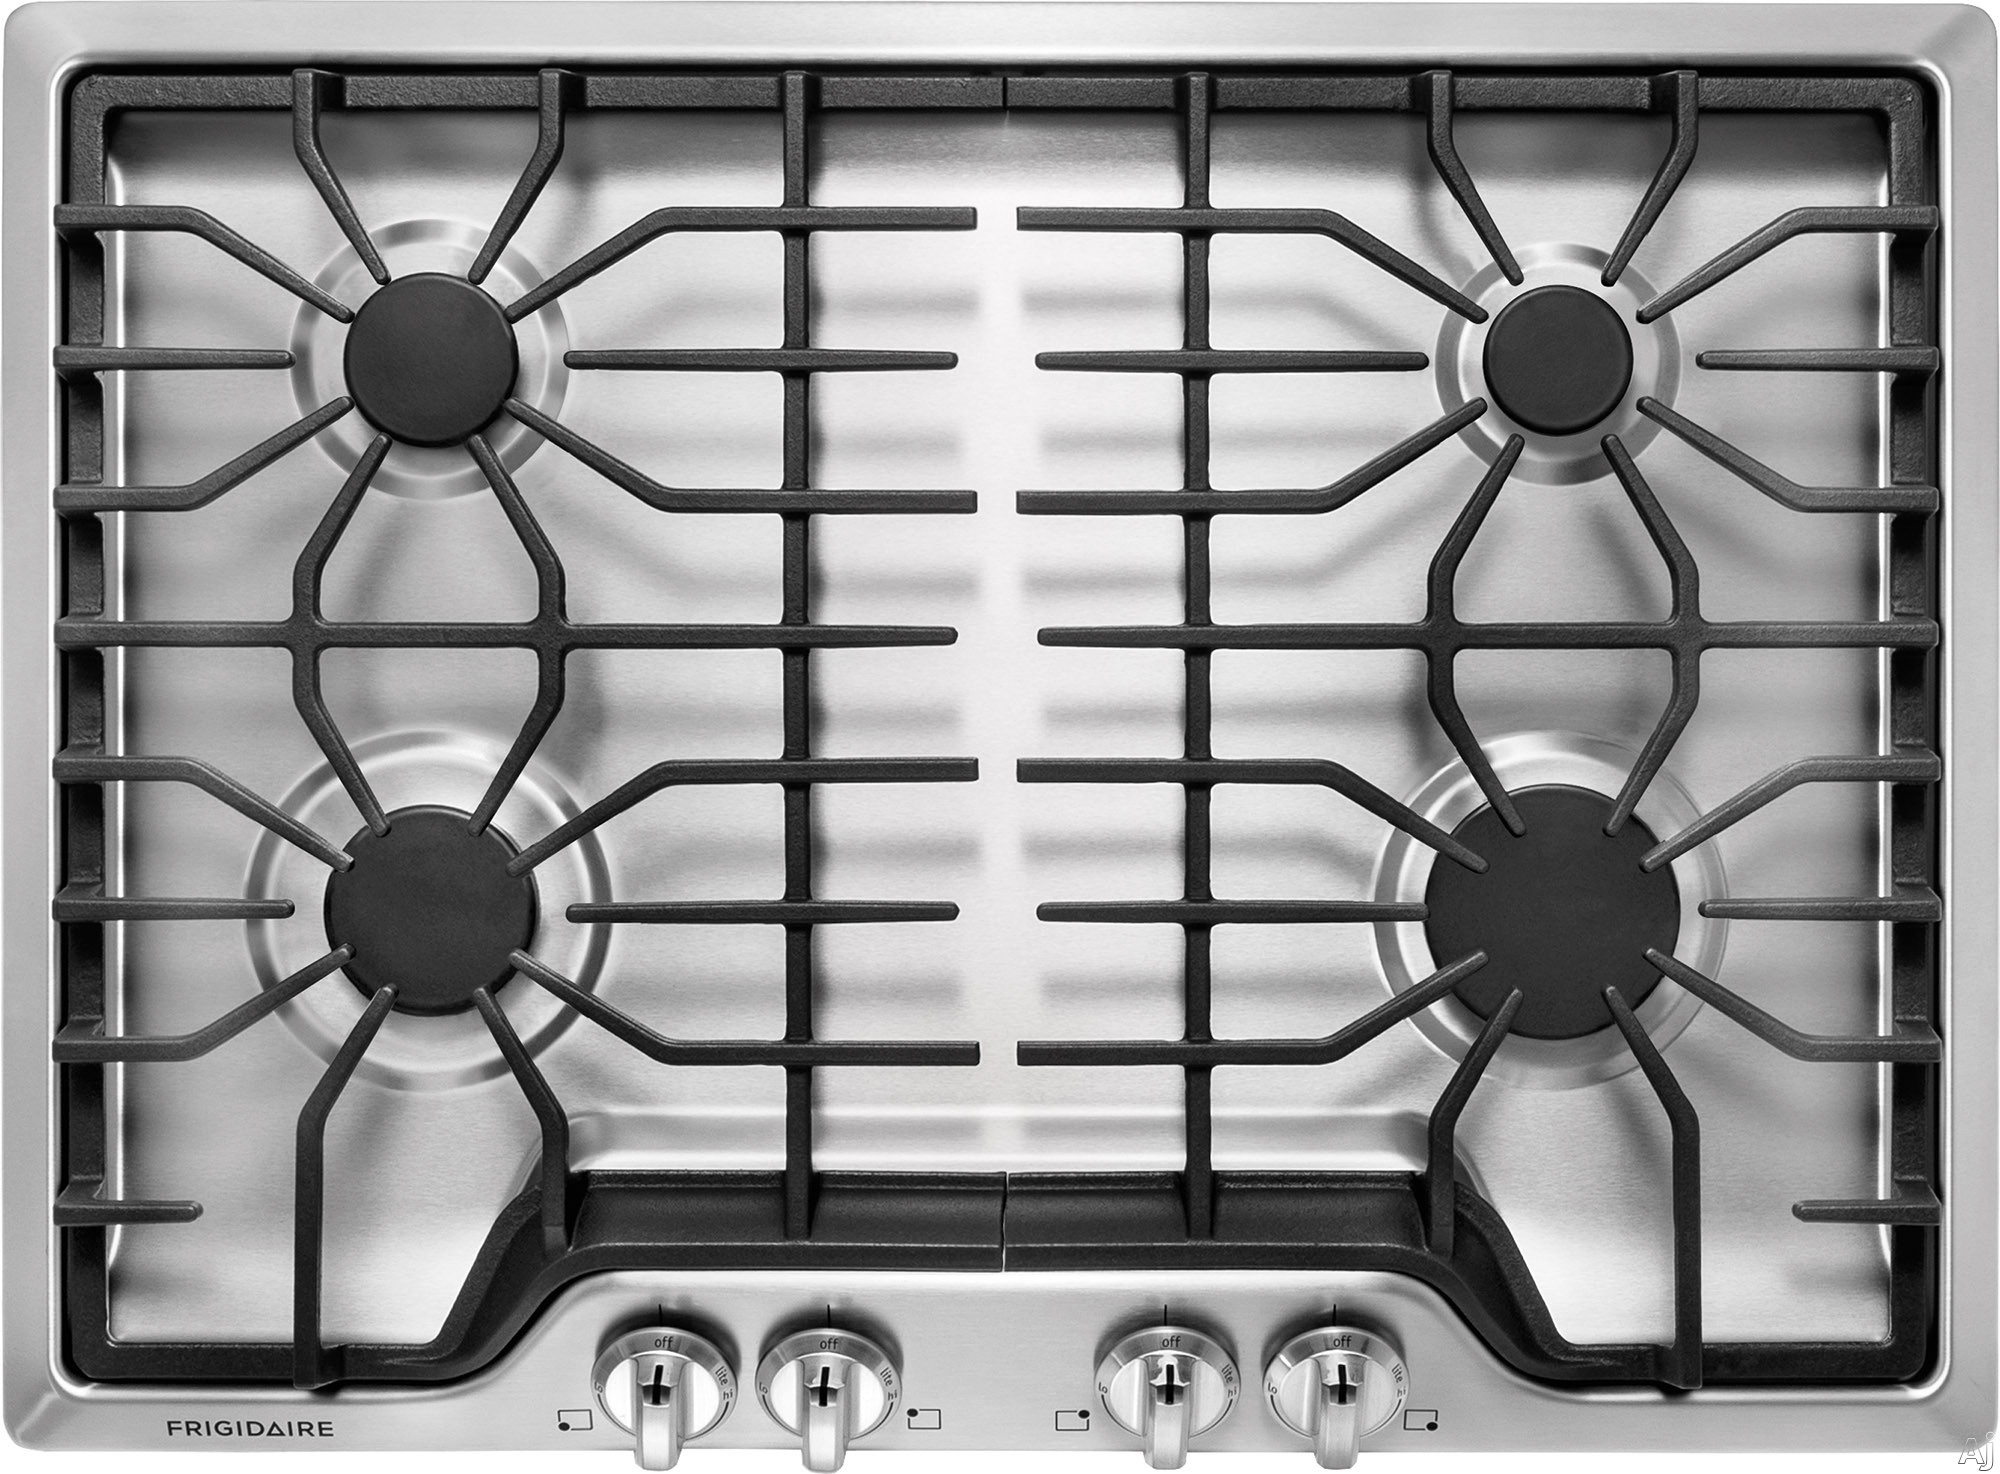 Frigidaire FFGC3026SS 30 Inch Gas Cooktop with 4 Sealed Burners, Cast Iron Grates, Ready-Select Controls, Electronic Pilotless Ignition, Liquid Propane Conversion and ADA Compliant: Stainless Steel